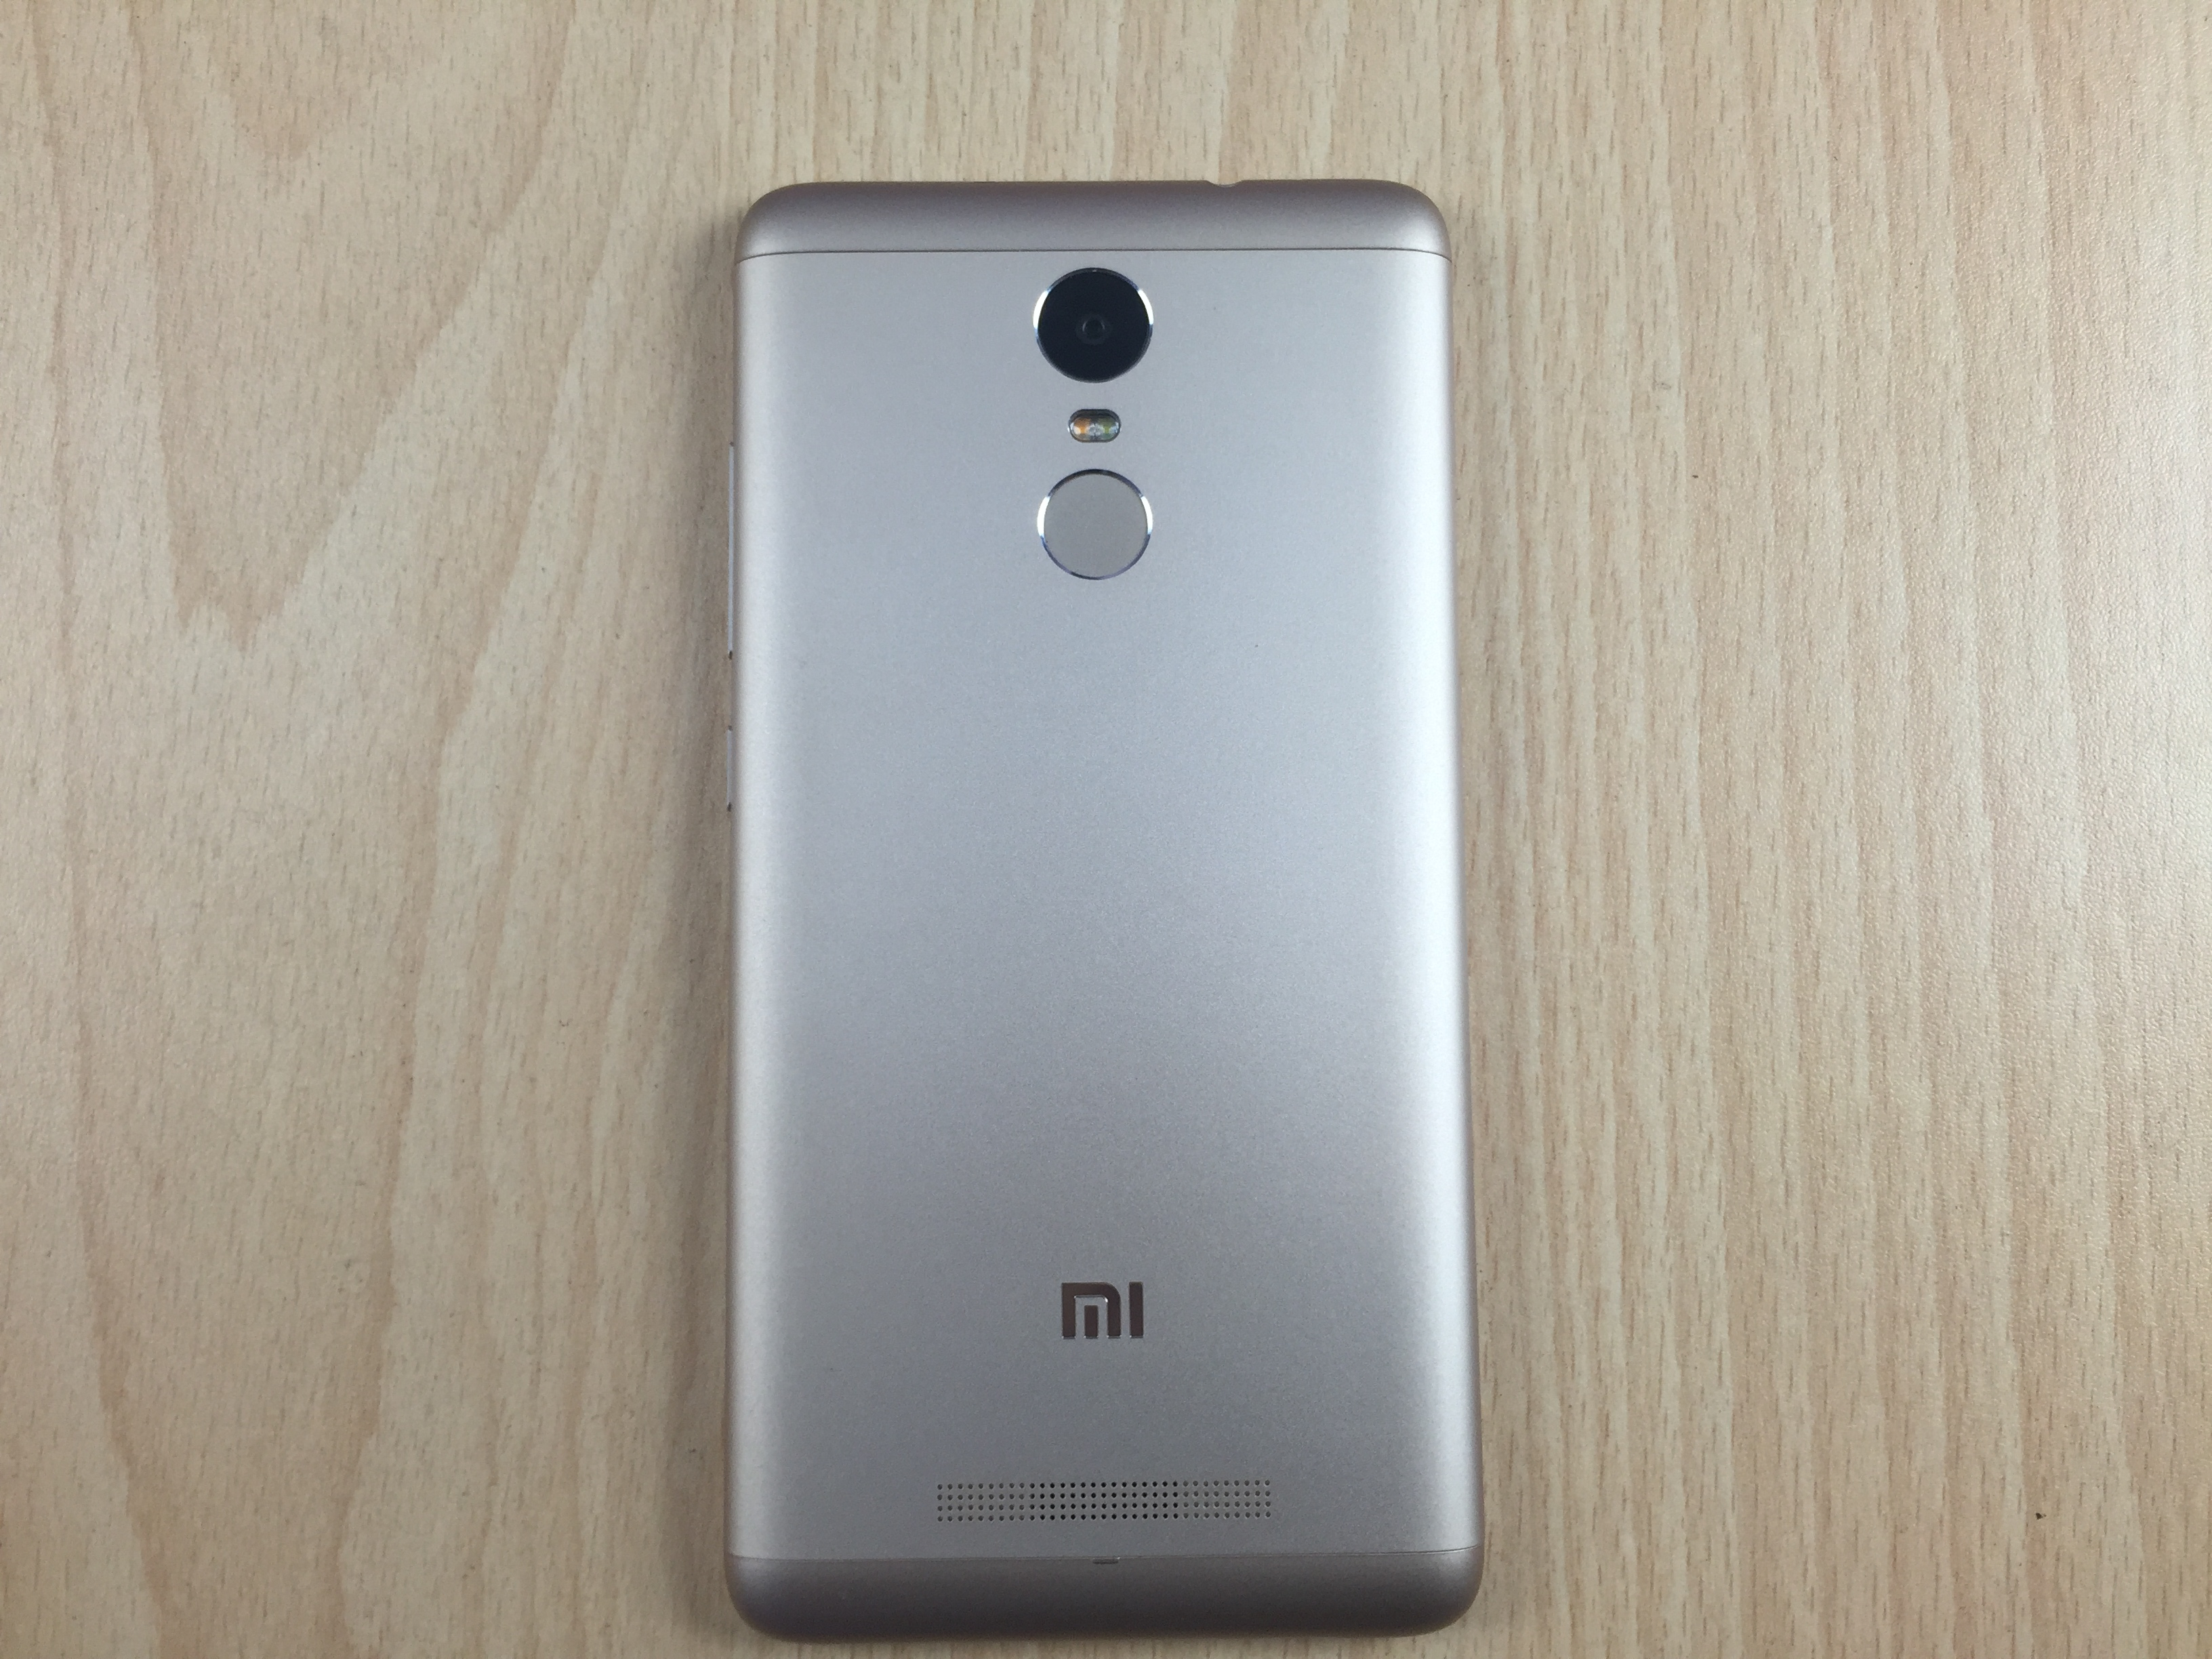 Redmi Note 3 India FAQ, Pros, Cons, User Reviews and